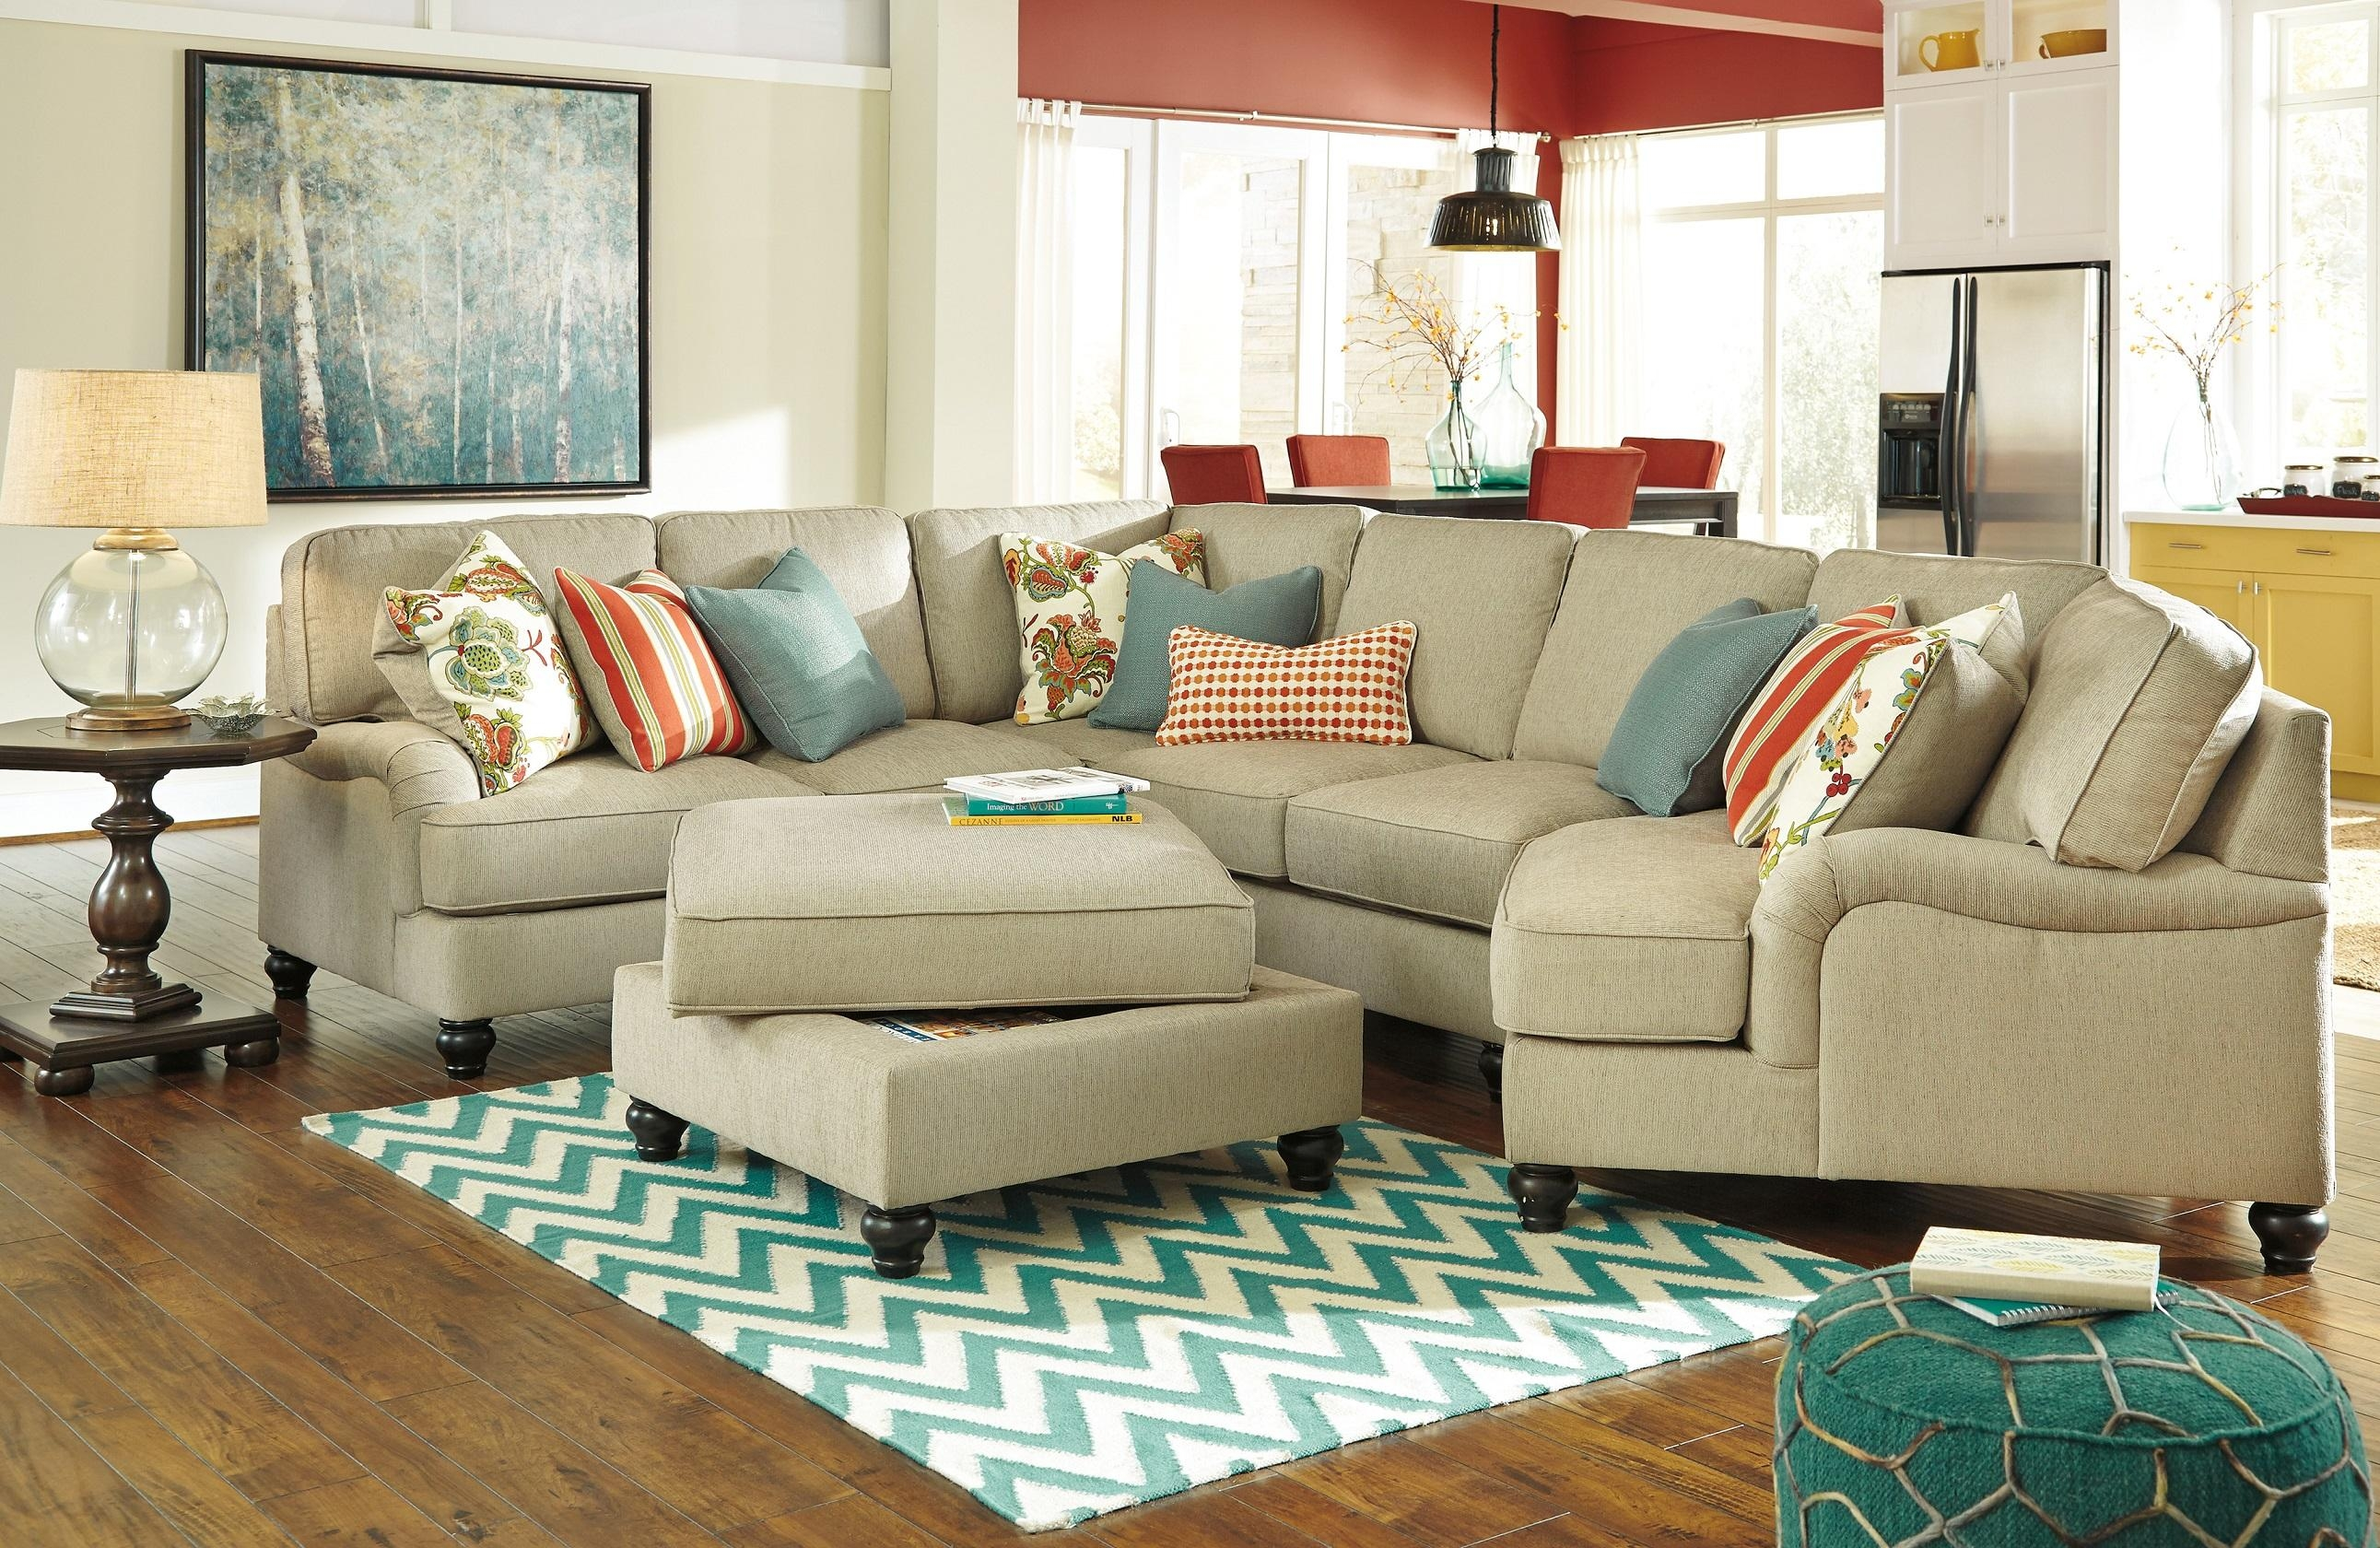 Sofas Center : Sectional Sofas Ashley Furniture Excellent Faux Regarding Ashley Furniture Leather Sectional Sofas (Image 19 of 20)